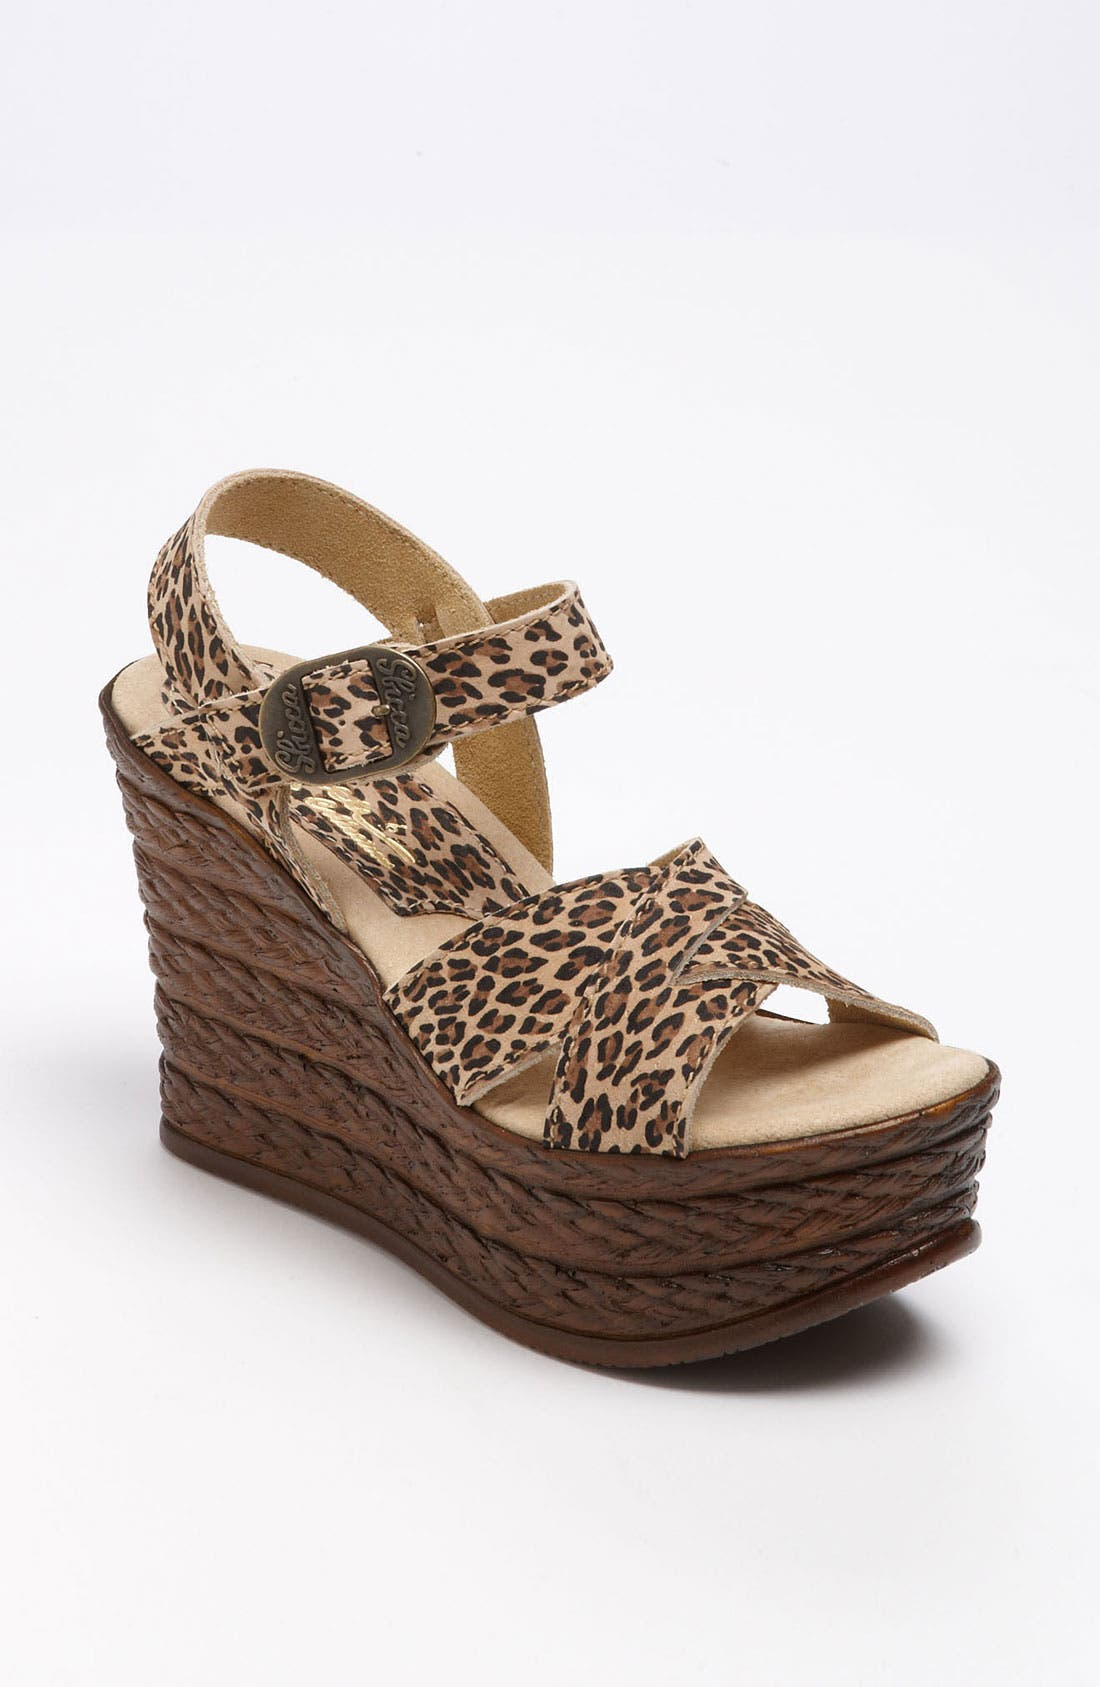 Alternate Image 1 Selected - Sbicca 'Lizzy' Sandal